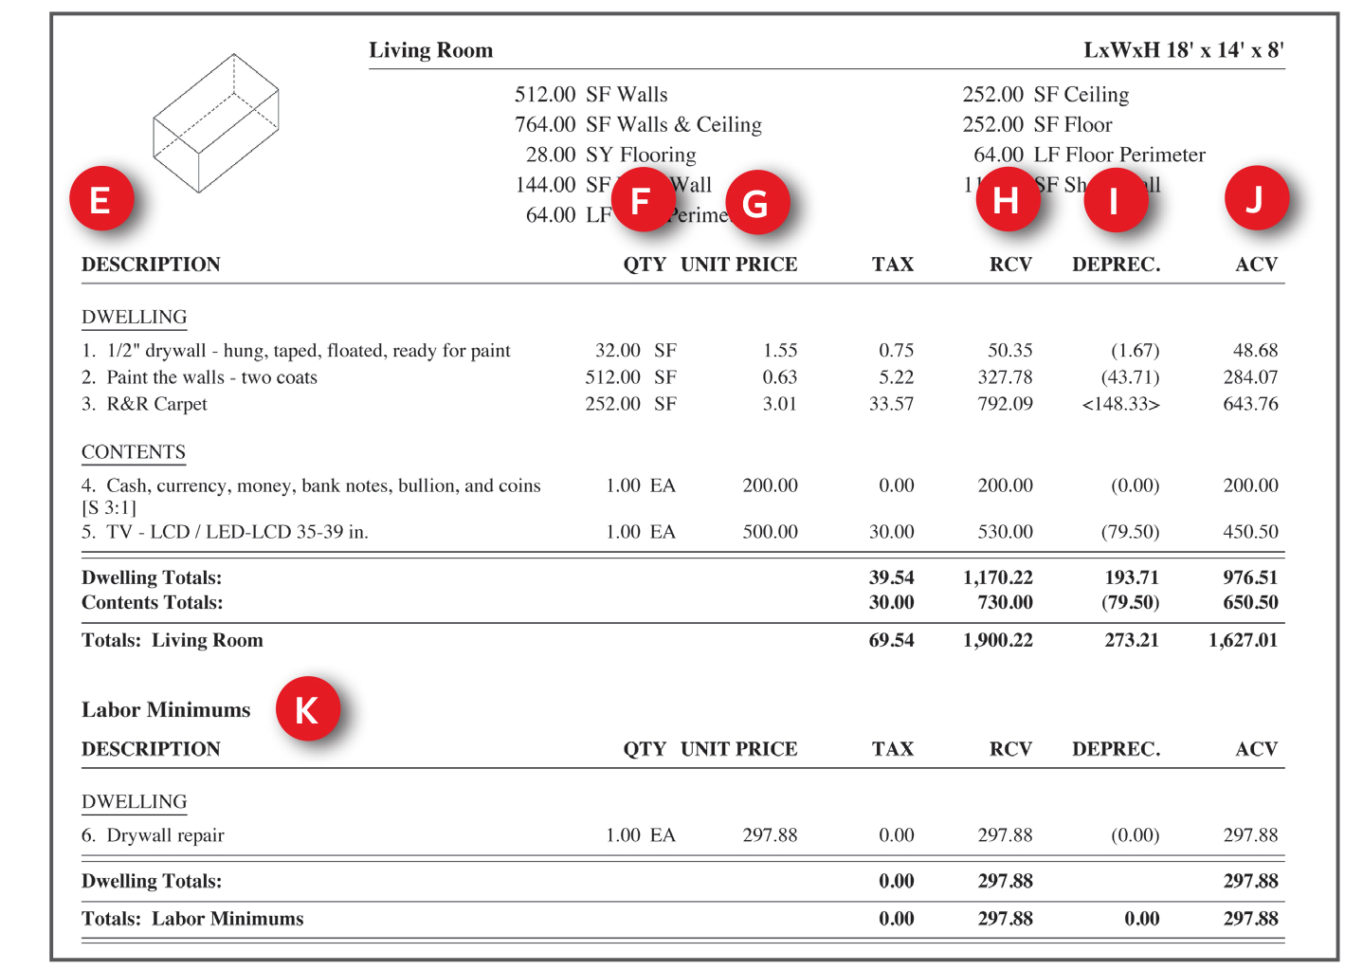 Home Contents Insurance Calculator Spreadsheet With Regard To Guide To Understanding Your Property Claim Estimate  Travelers